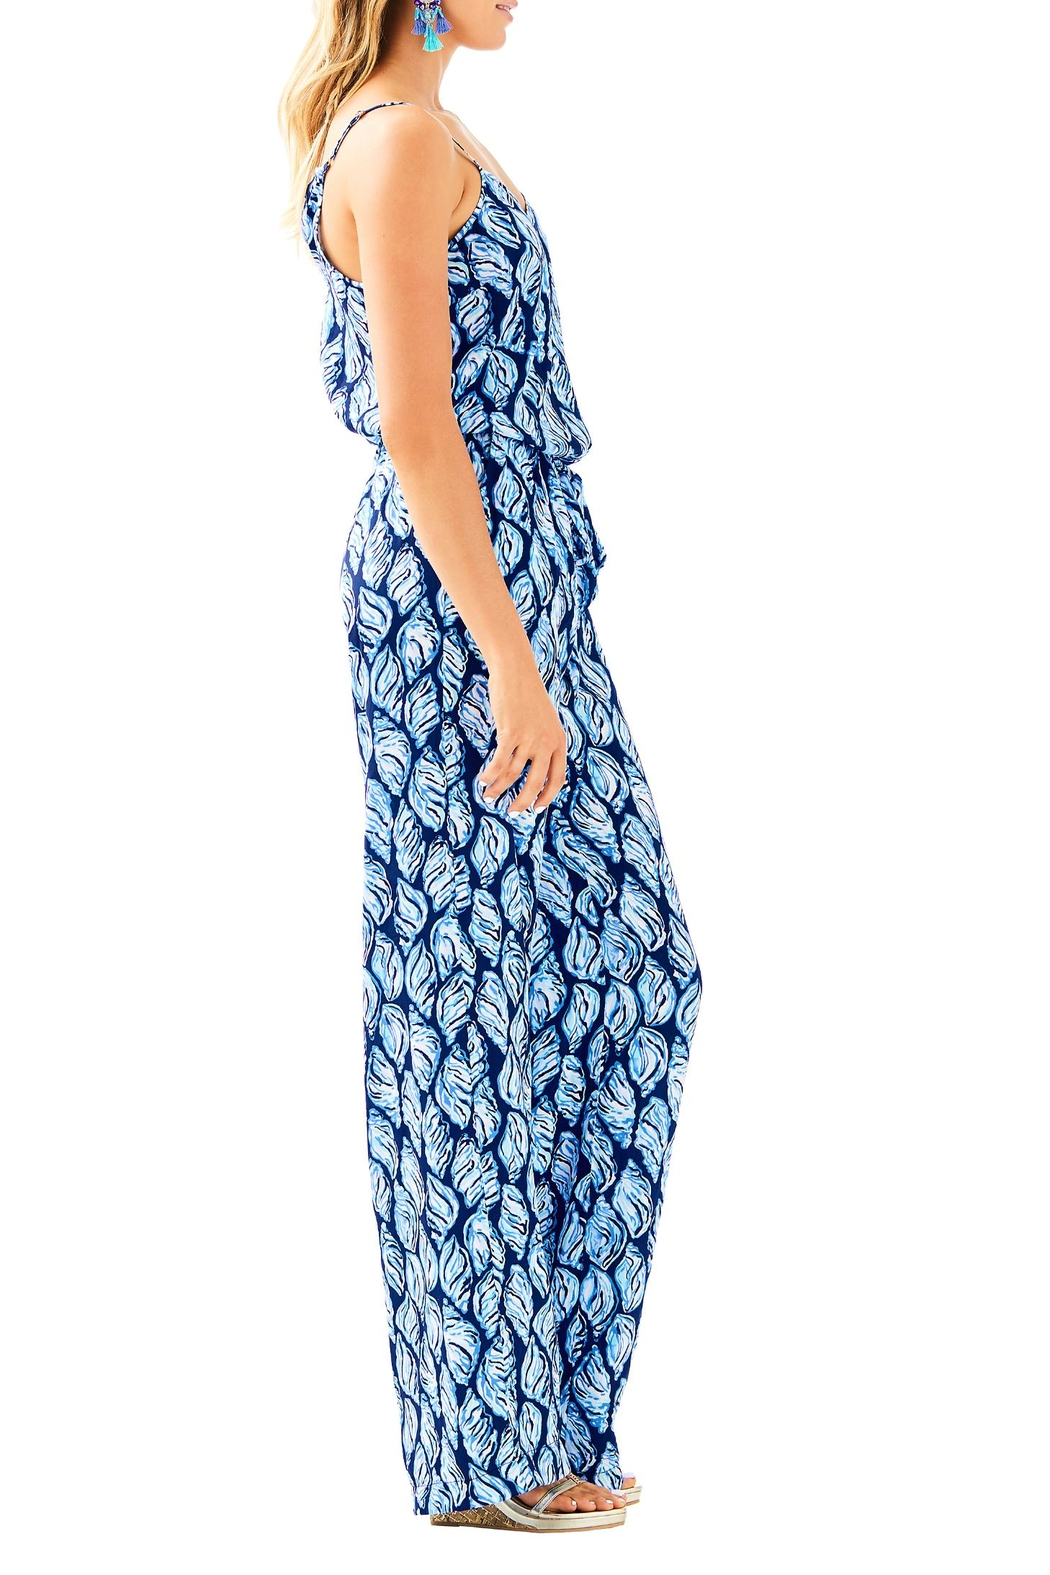 7a403bfad000 Lilly Pulitzer Dusk Jumpsuit from Sandestin Golf and Beach Resort by ...